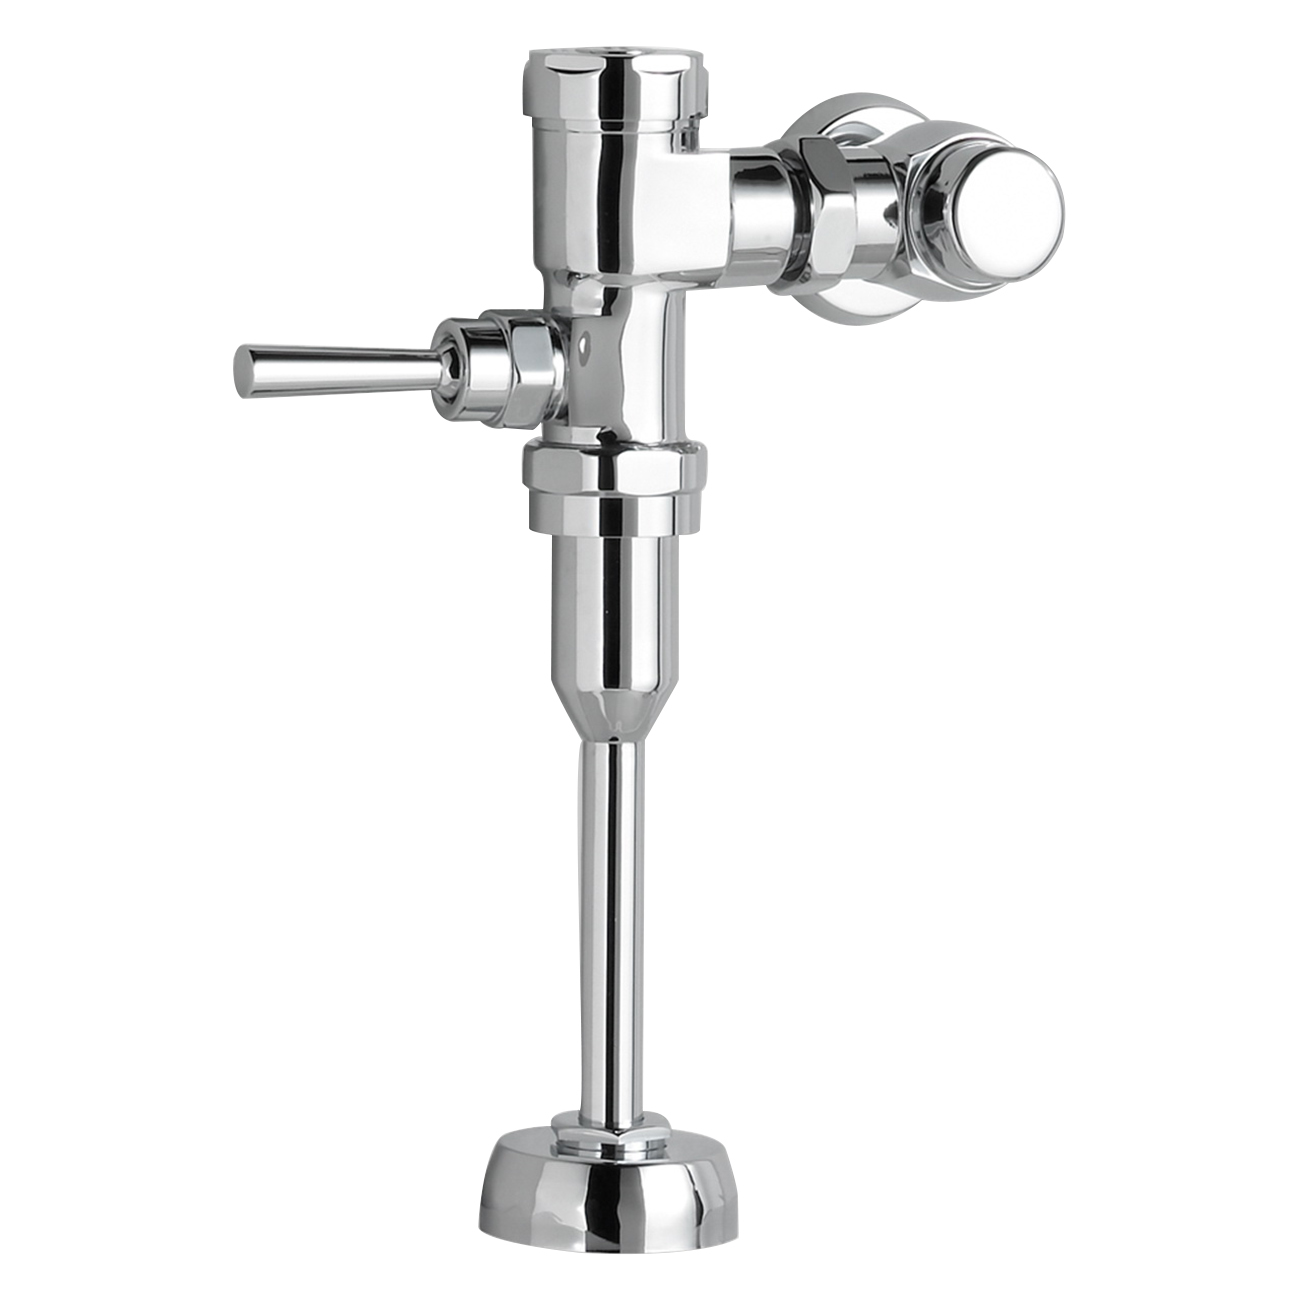 American Standard Selectronic® 6065.111.002 Polished Chrome Brass Manual Flush Valve, 3/4 in IPS, 1.1 gpf